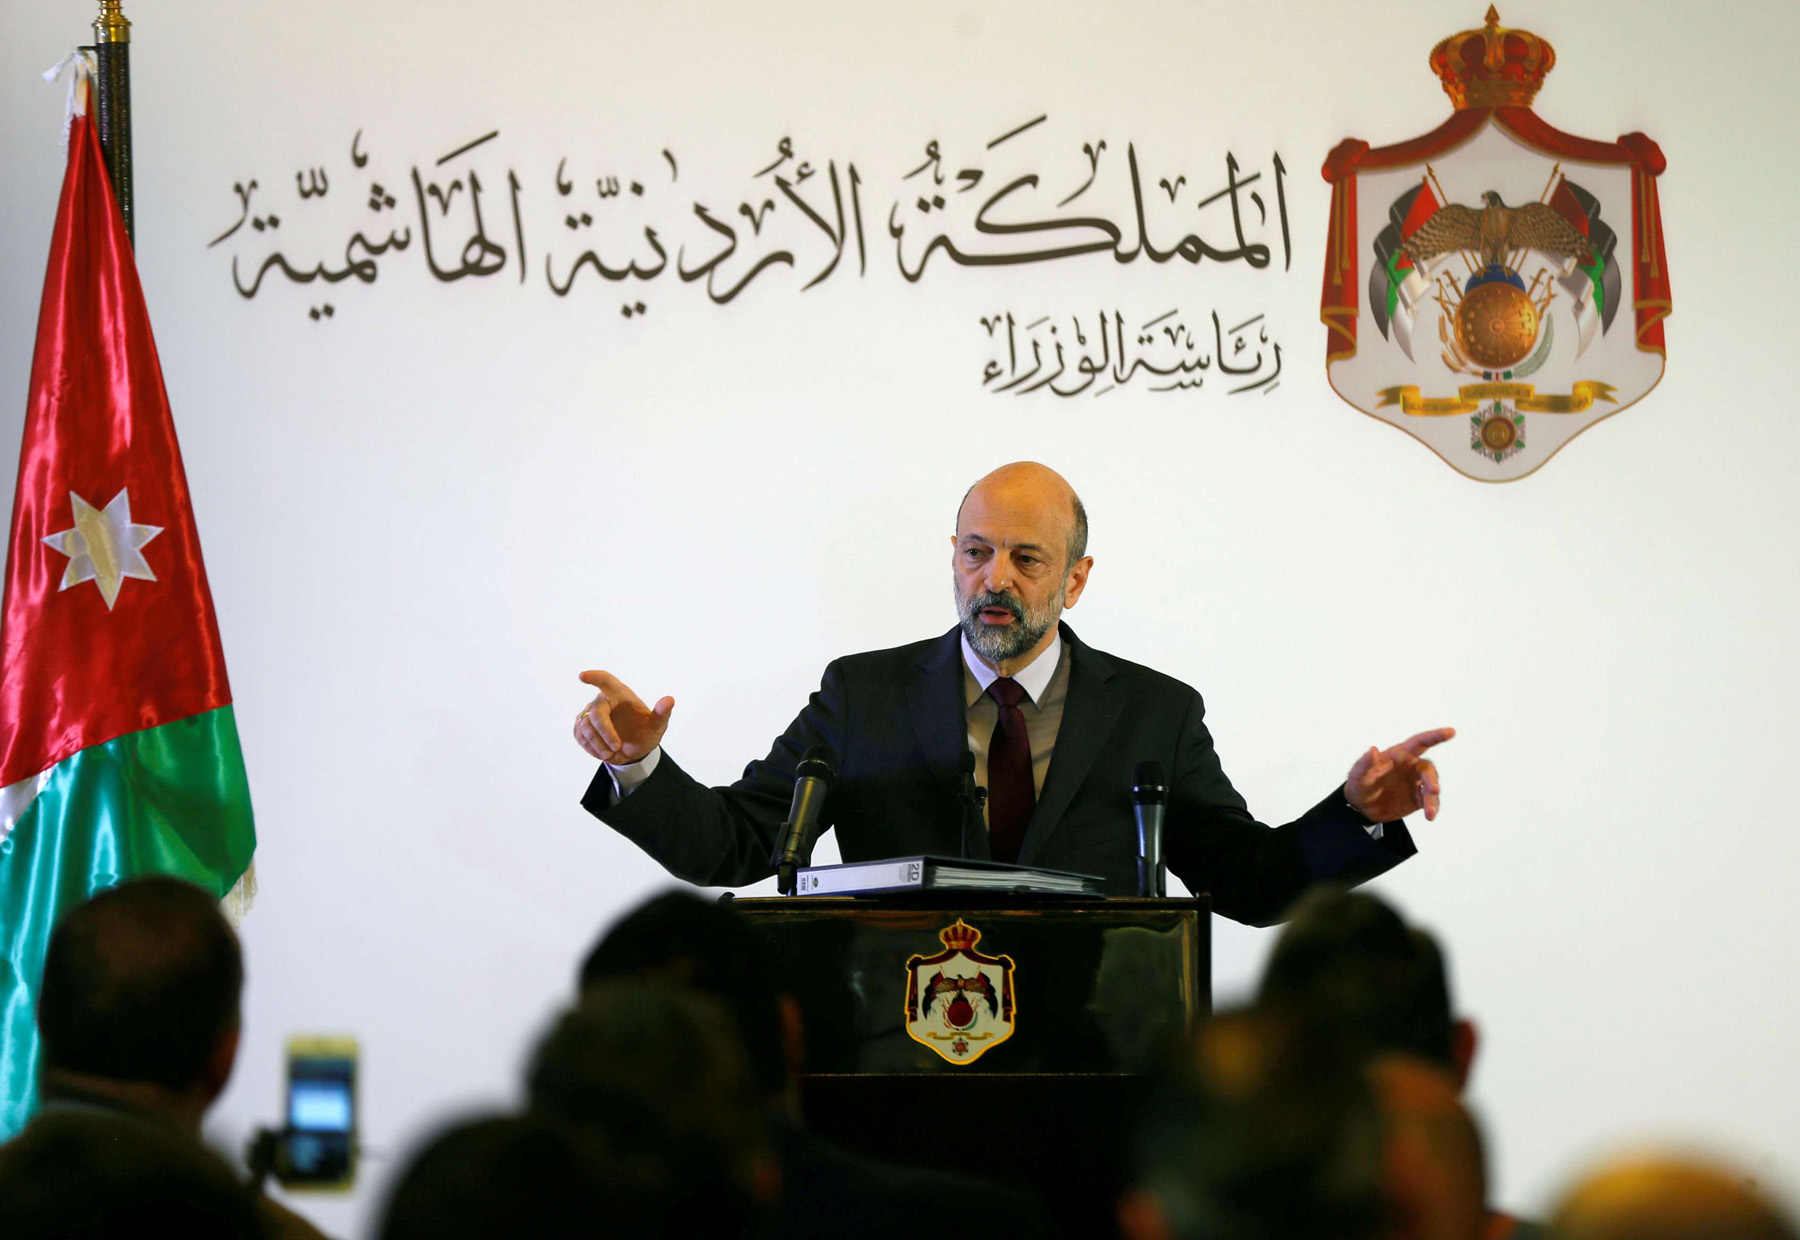 Jordan's Prime Minister Omar al-Razzaz speaks to the media during a news conference in Amman. (Reuters)